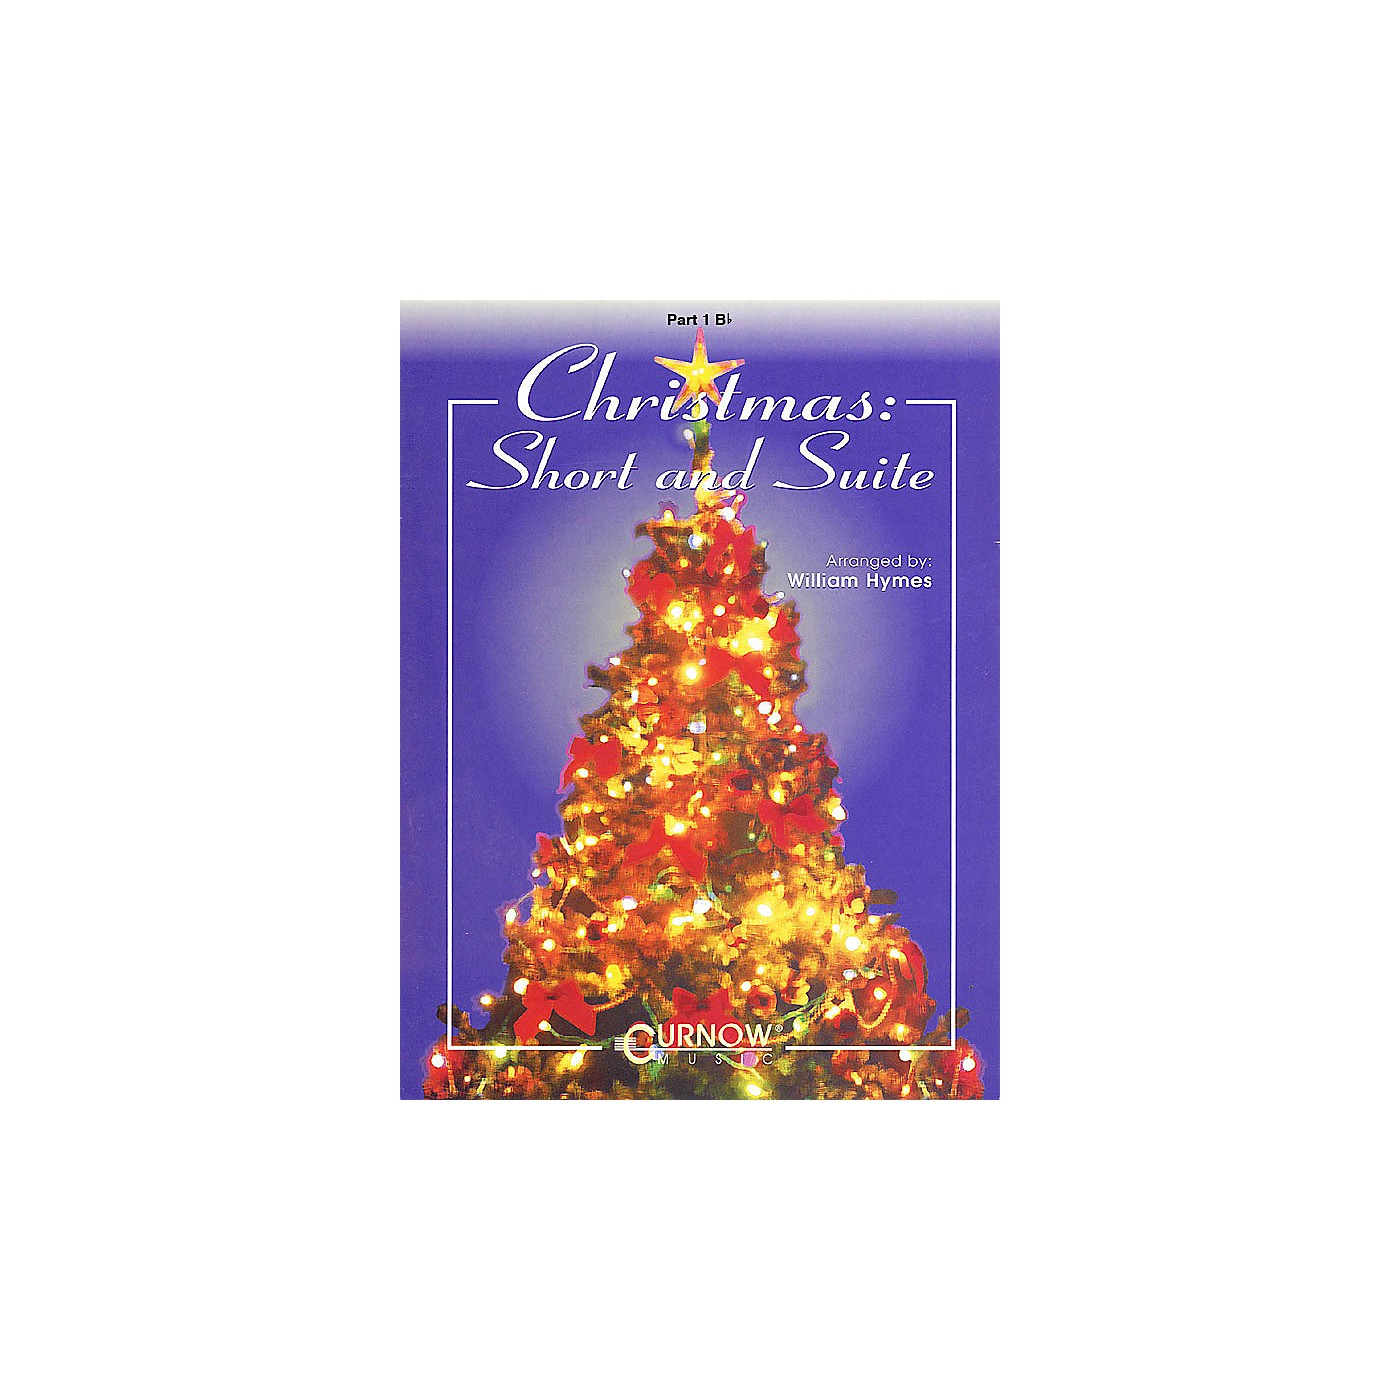 Curnow Music Christmas: Short and Suite (Part 1 - Bb Instruments) Concert Band Level 2-4 Arranged by William Himes thumbnail